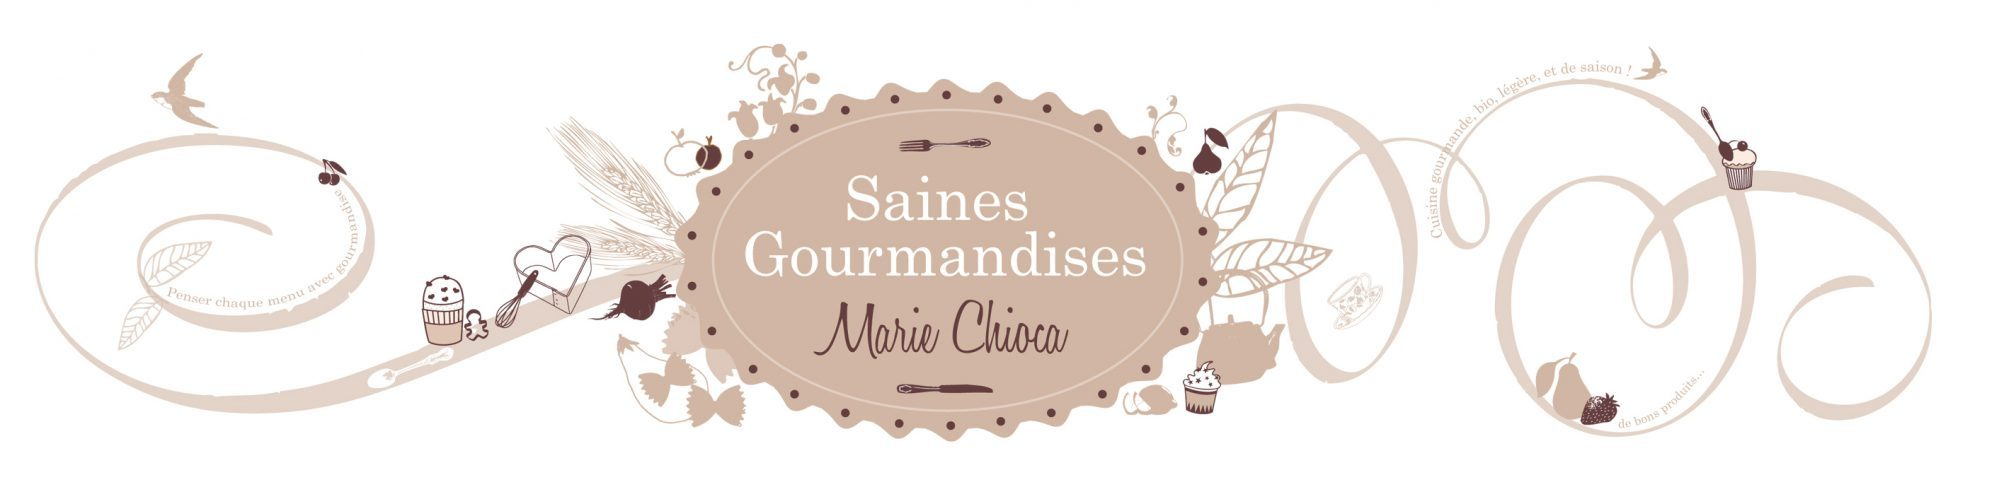 Saines Gourmandises